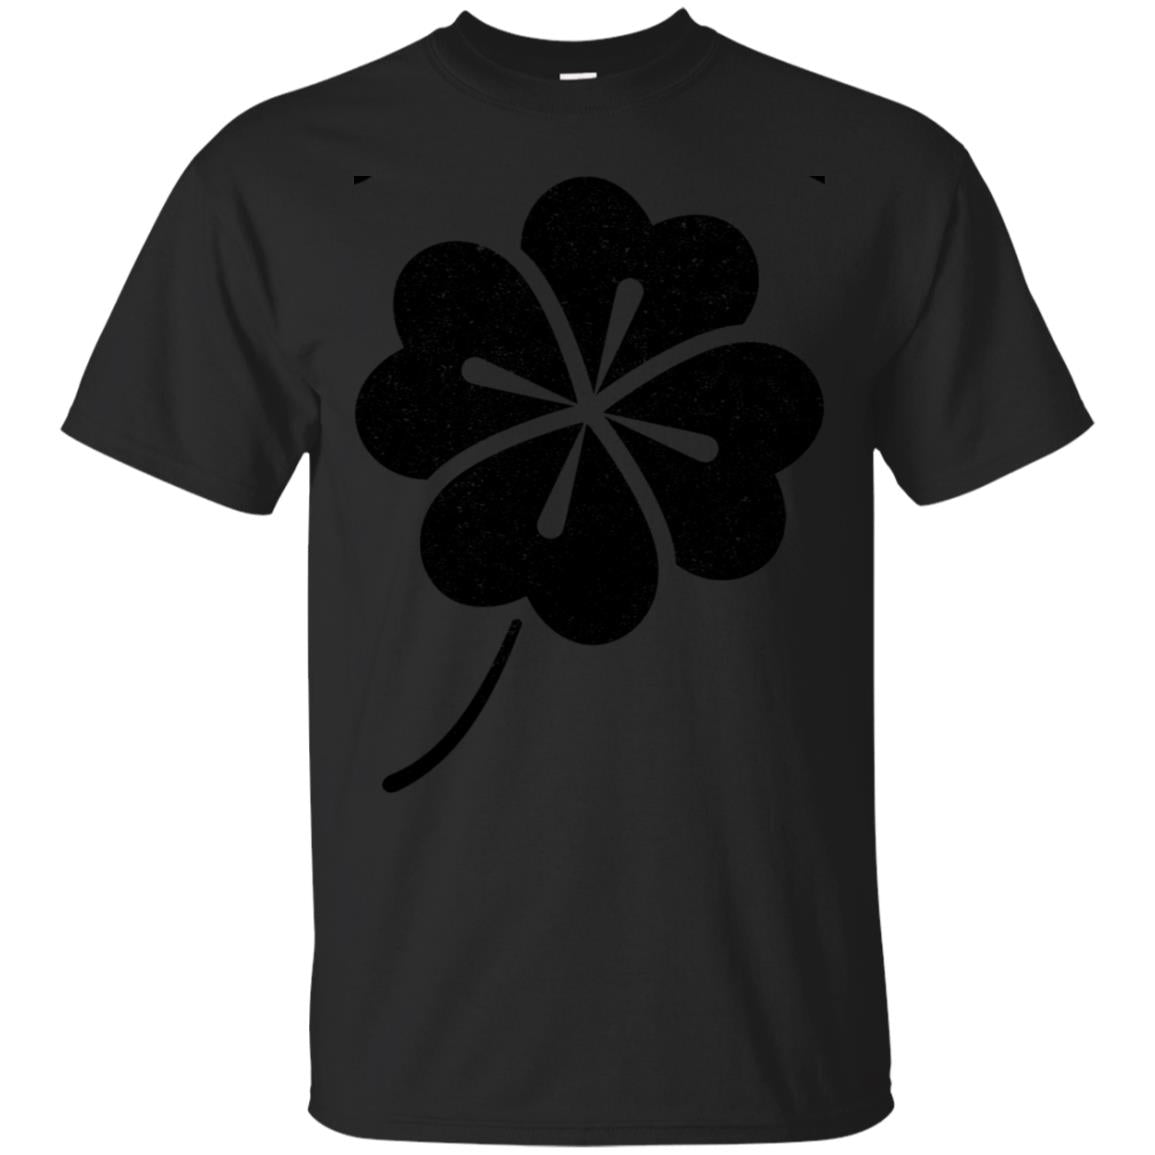 Rub Me For Good Luck Shirt Funny St Patricks Day Womens Mens 99promocode